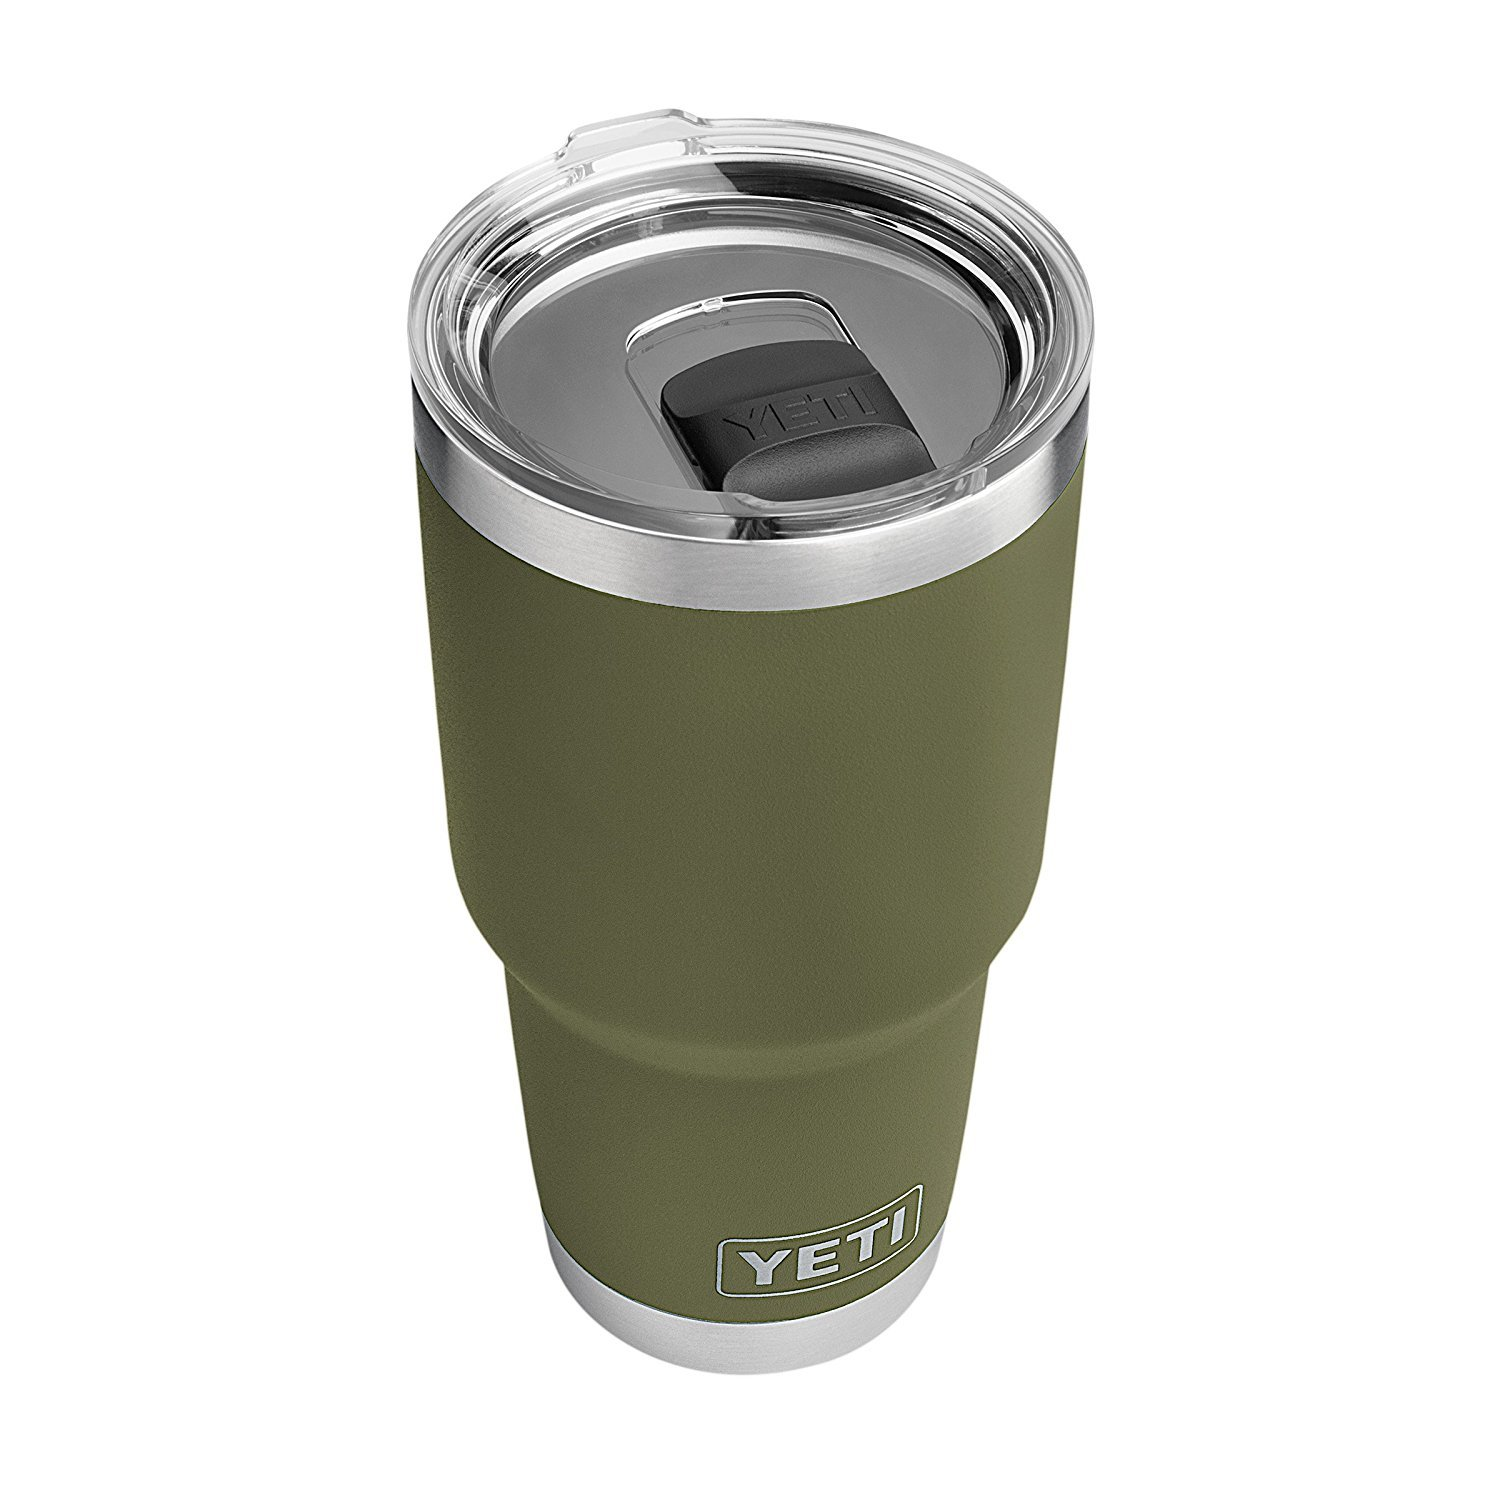 YETI Rambler 30 oz Stainless Steel Vacuum Insulated Tumbler w/ MagSlider Lid, Olive Green by YETI